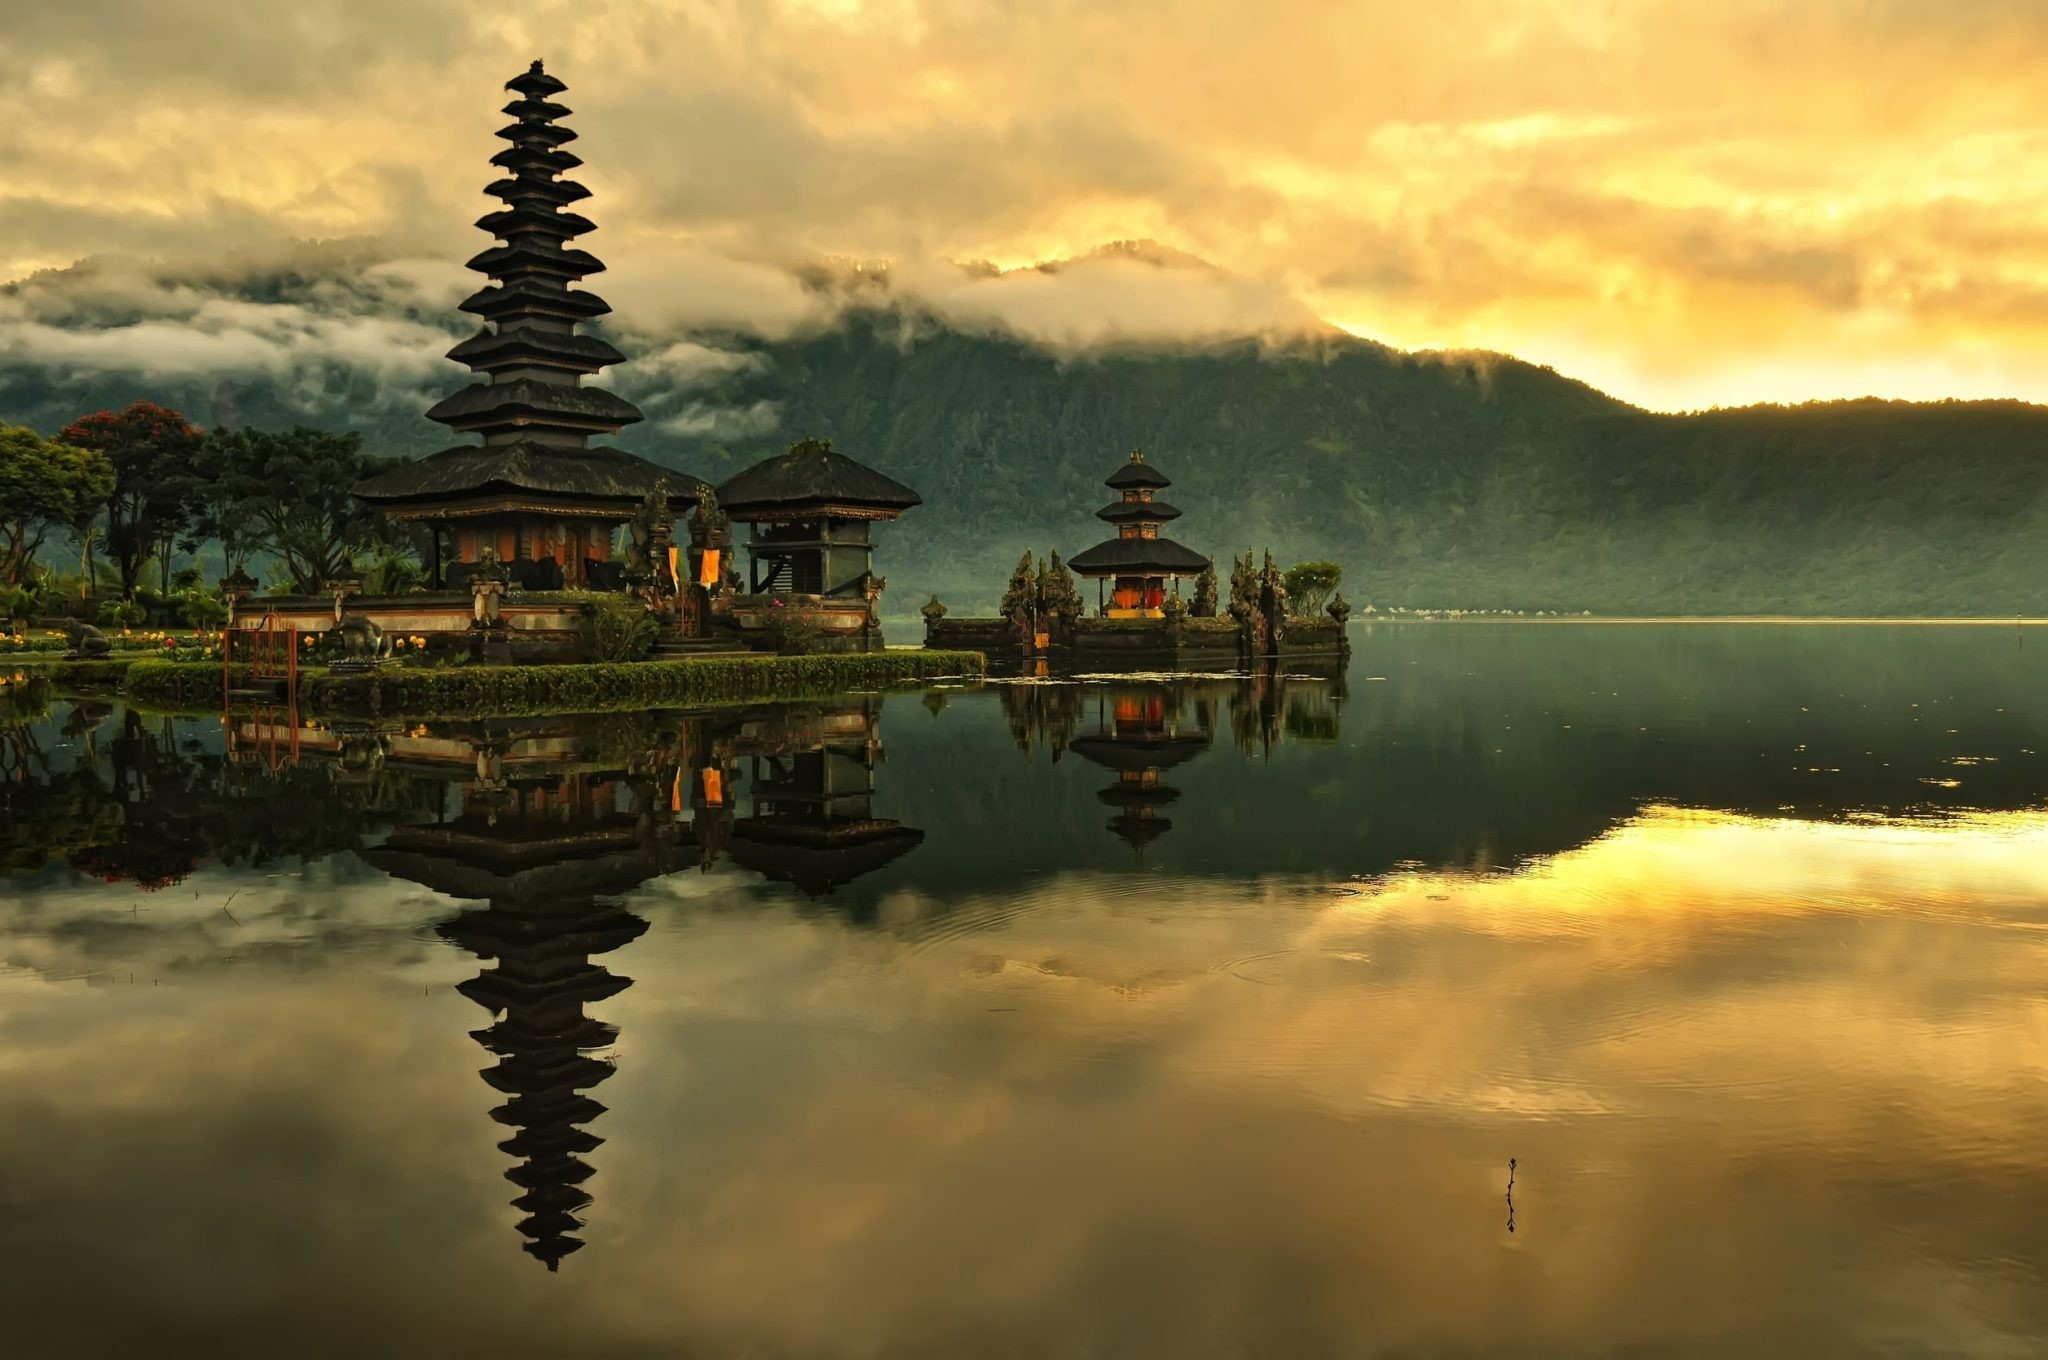 Res: 2048x1360, nature landscape water indonesia bali island lake temple asian architecture  clouds sunrise mist trees mountains hills forest reflection morning  wallpaper ...